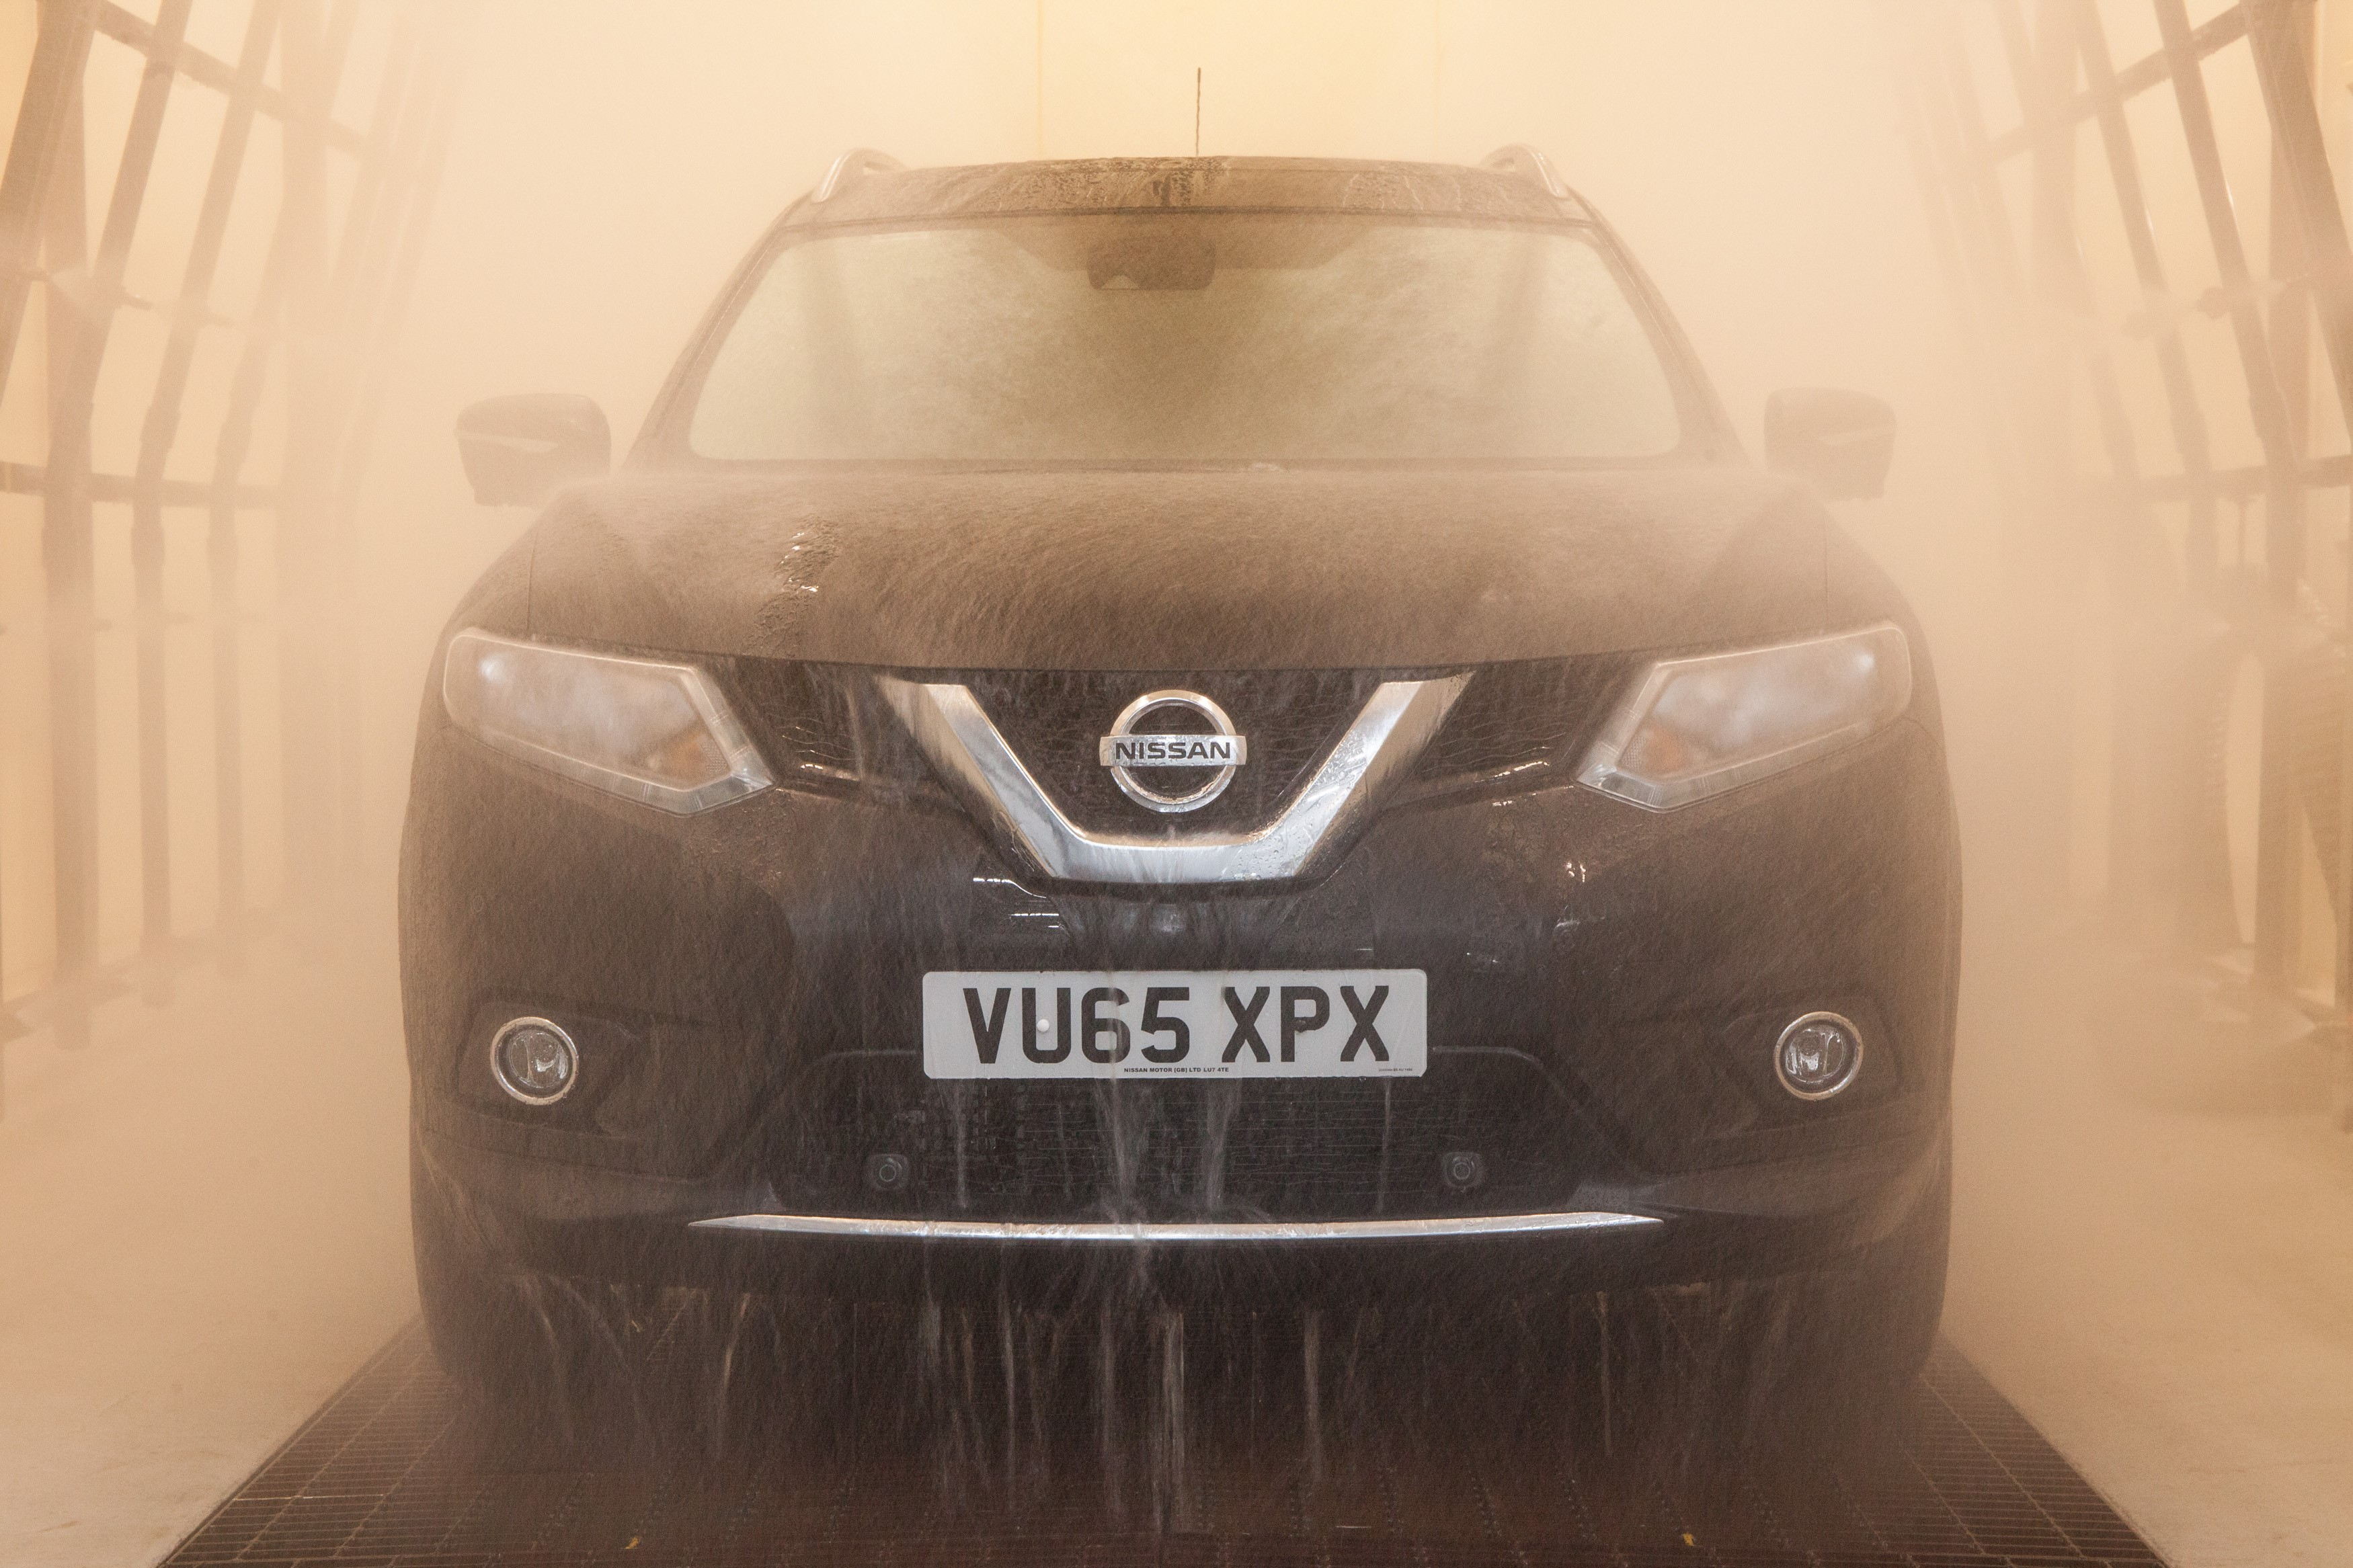 Nissan sprays 4,000mm of water, per hour onto its vehicles in testing to ensure windows are watertight and seals are sleet-proof.